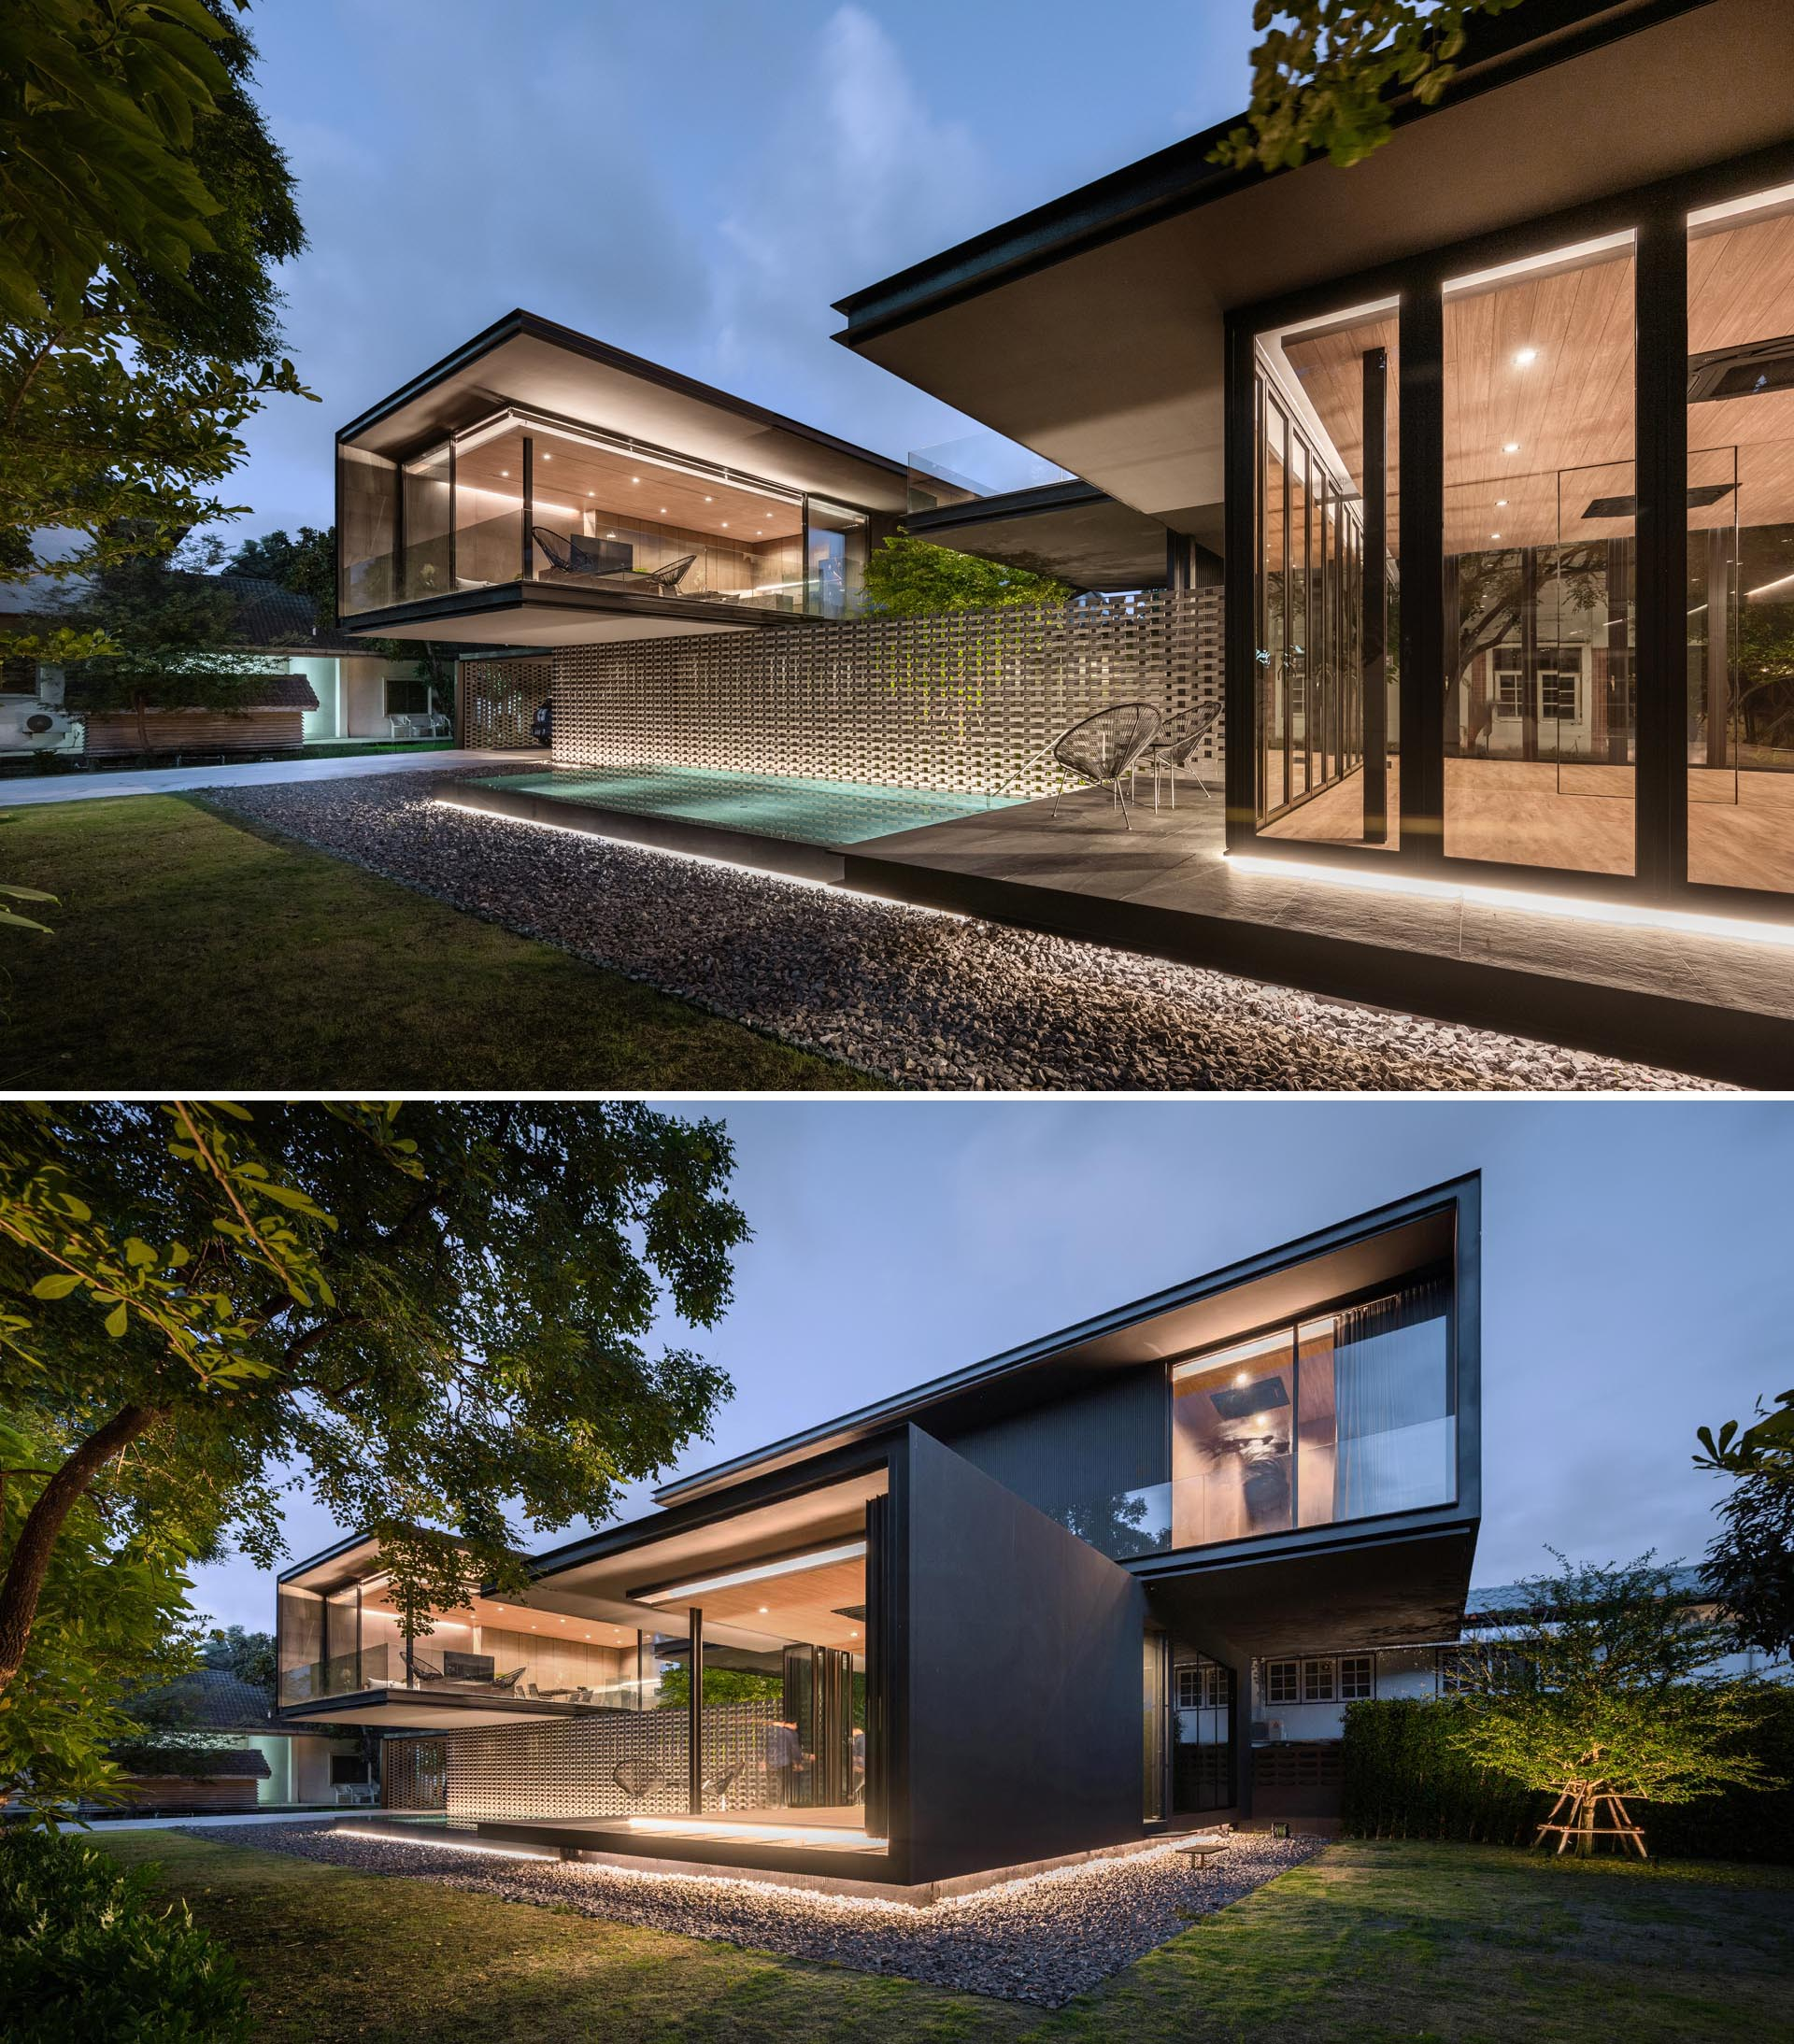 design feature on this modern house